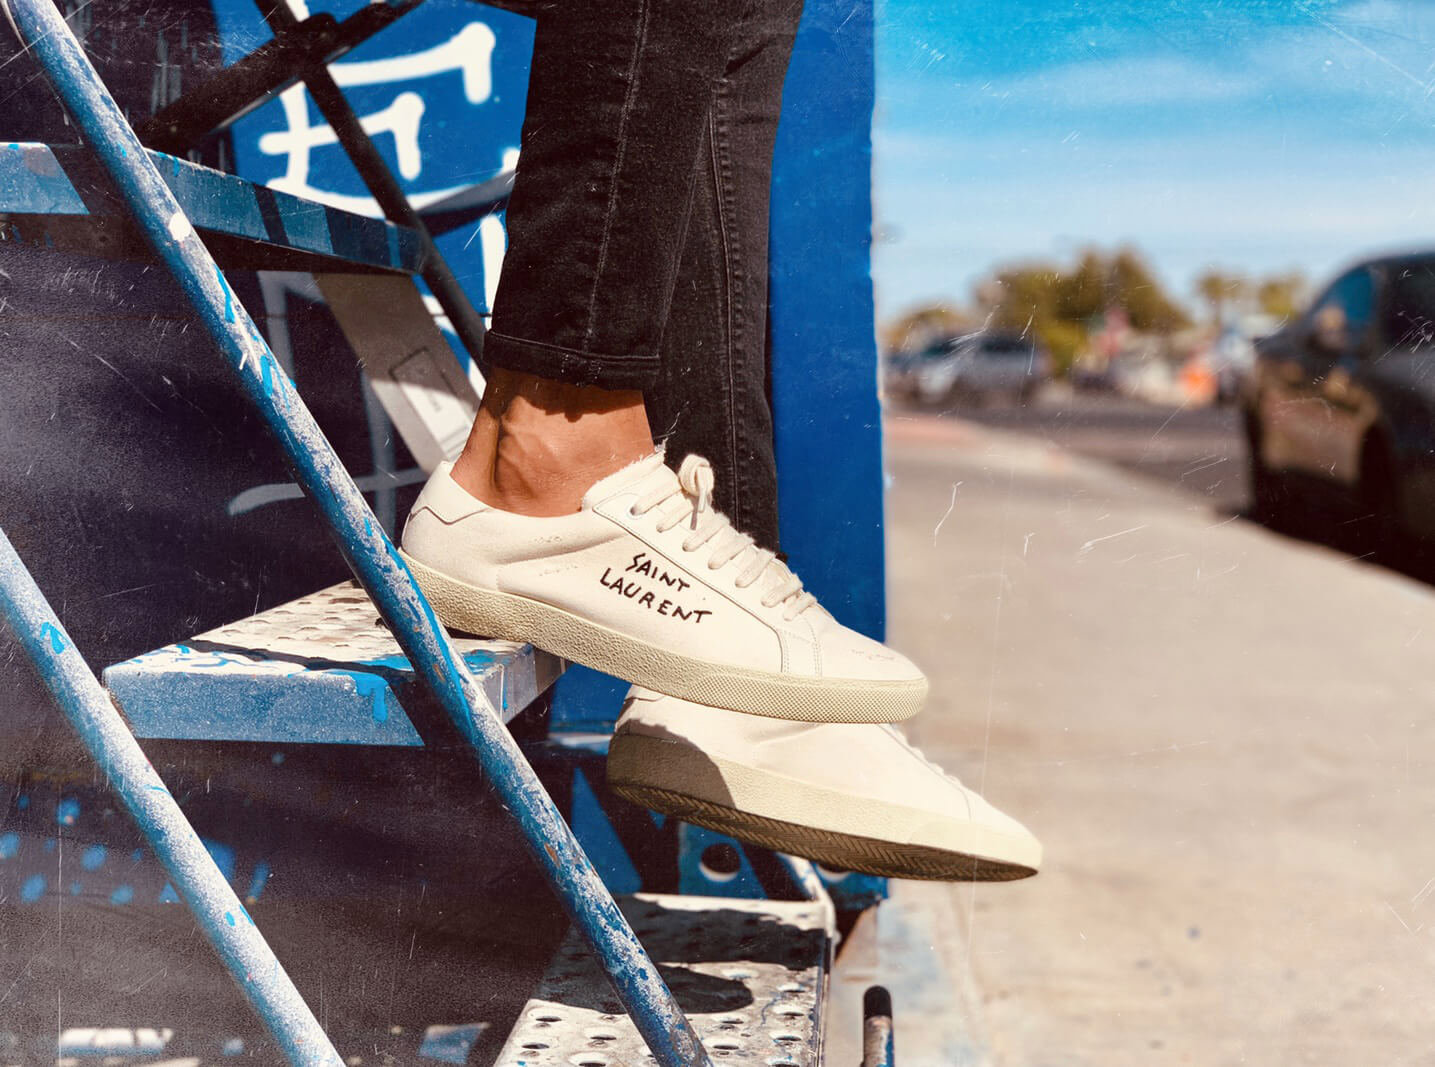 The Best Ways For Men To Wear White Sneakers Everyday